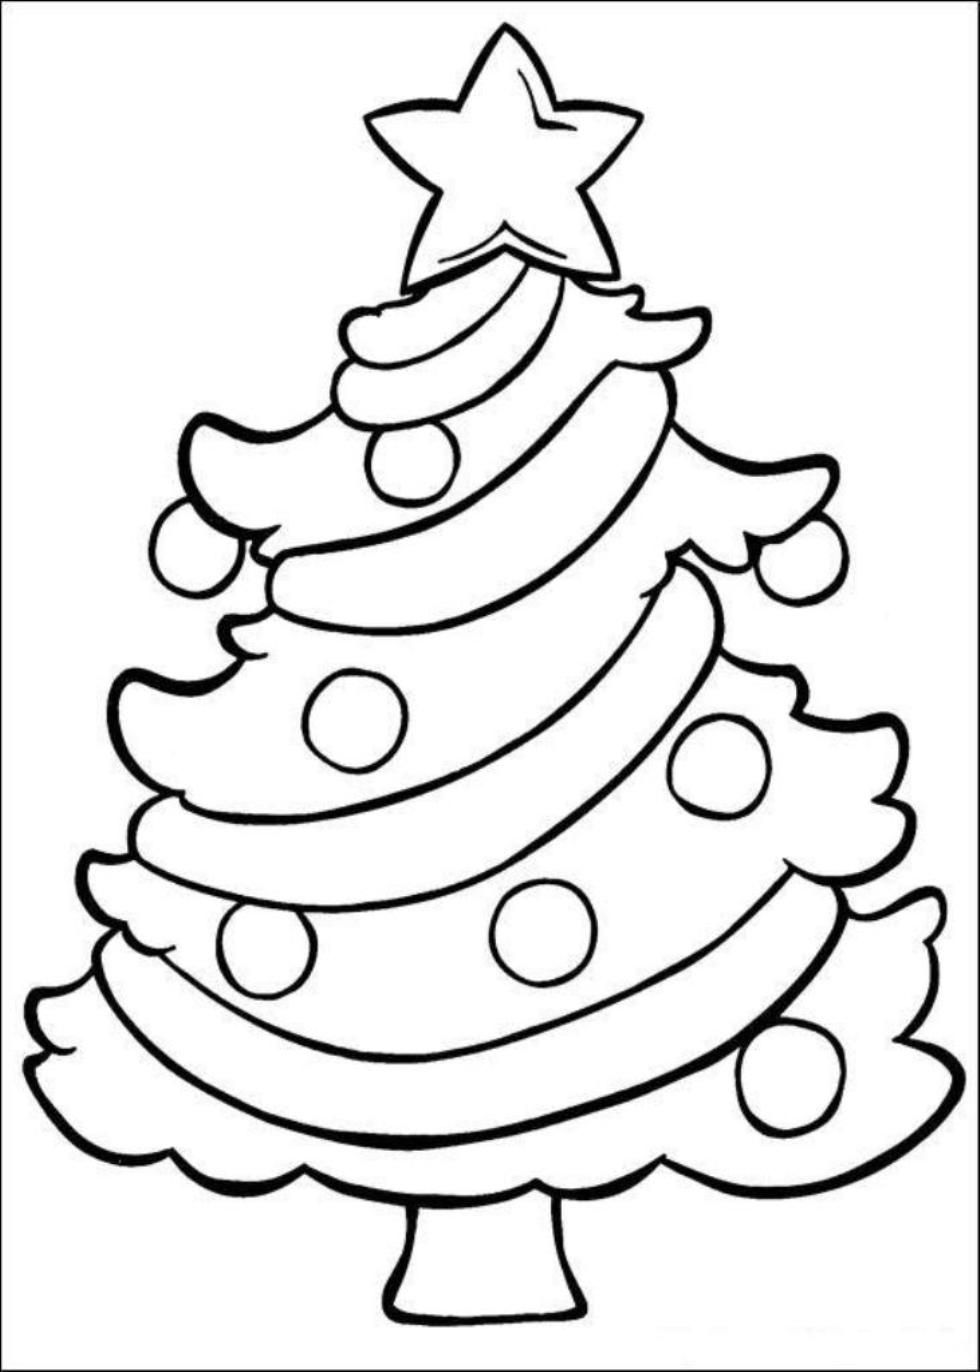 Coloring pages printable free christmas - Christmas 174 Coloring Page For Kids And Adults From Cartoons Coloring Pages Christmas Coloring Pages Free Printable Coloring Image